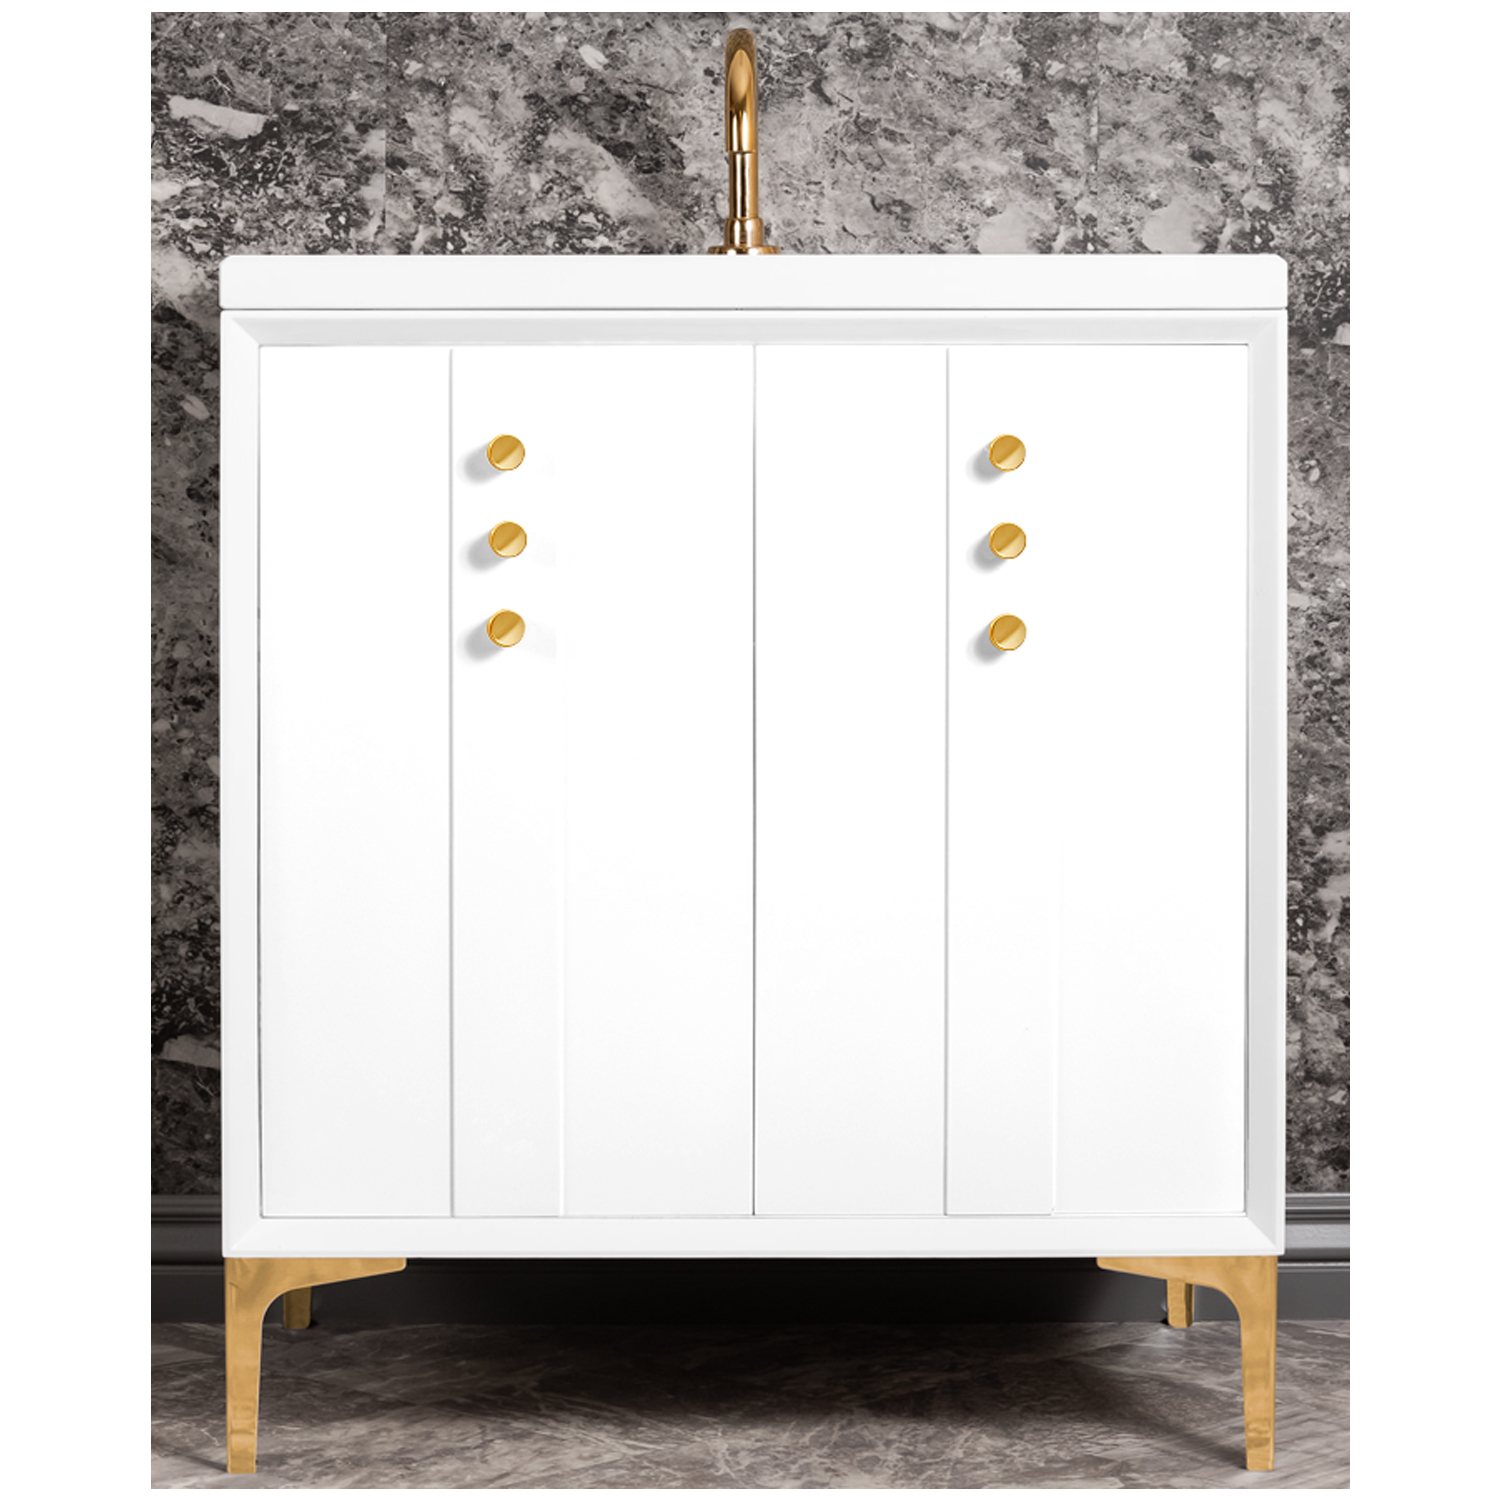 "VAN30W-009   30"" White Tuxedo with Buttons - Shown with PB (Polished Brass Finish)"